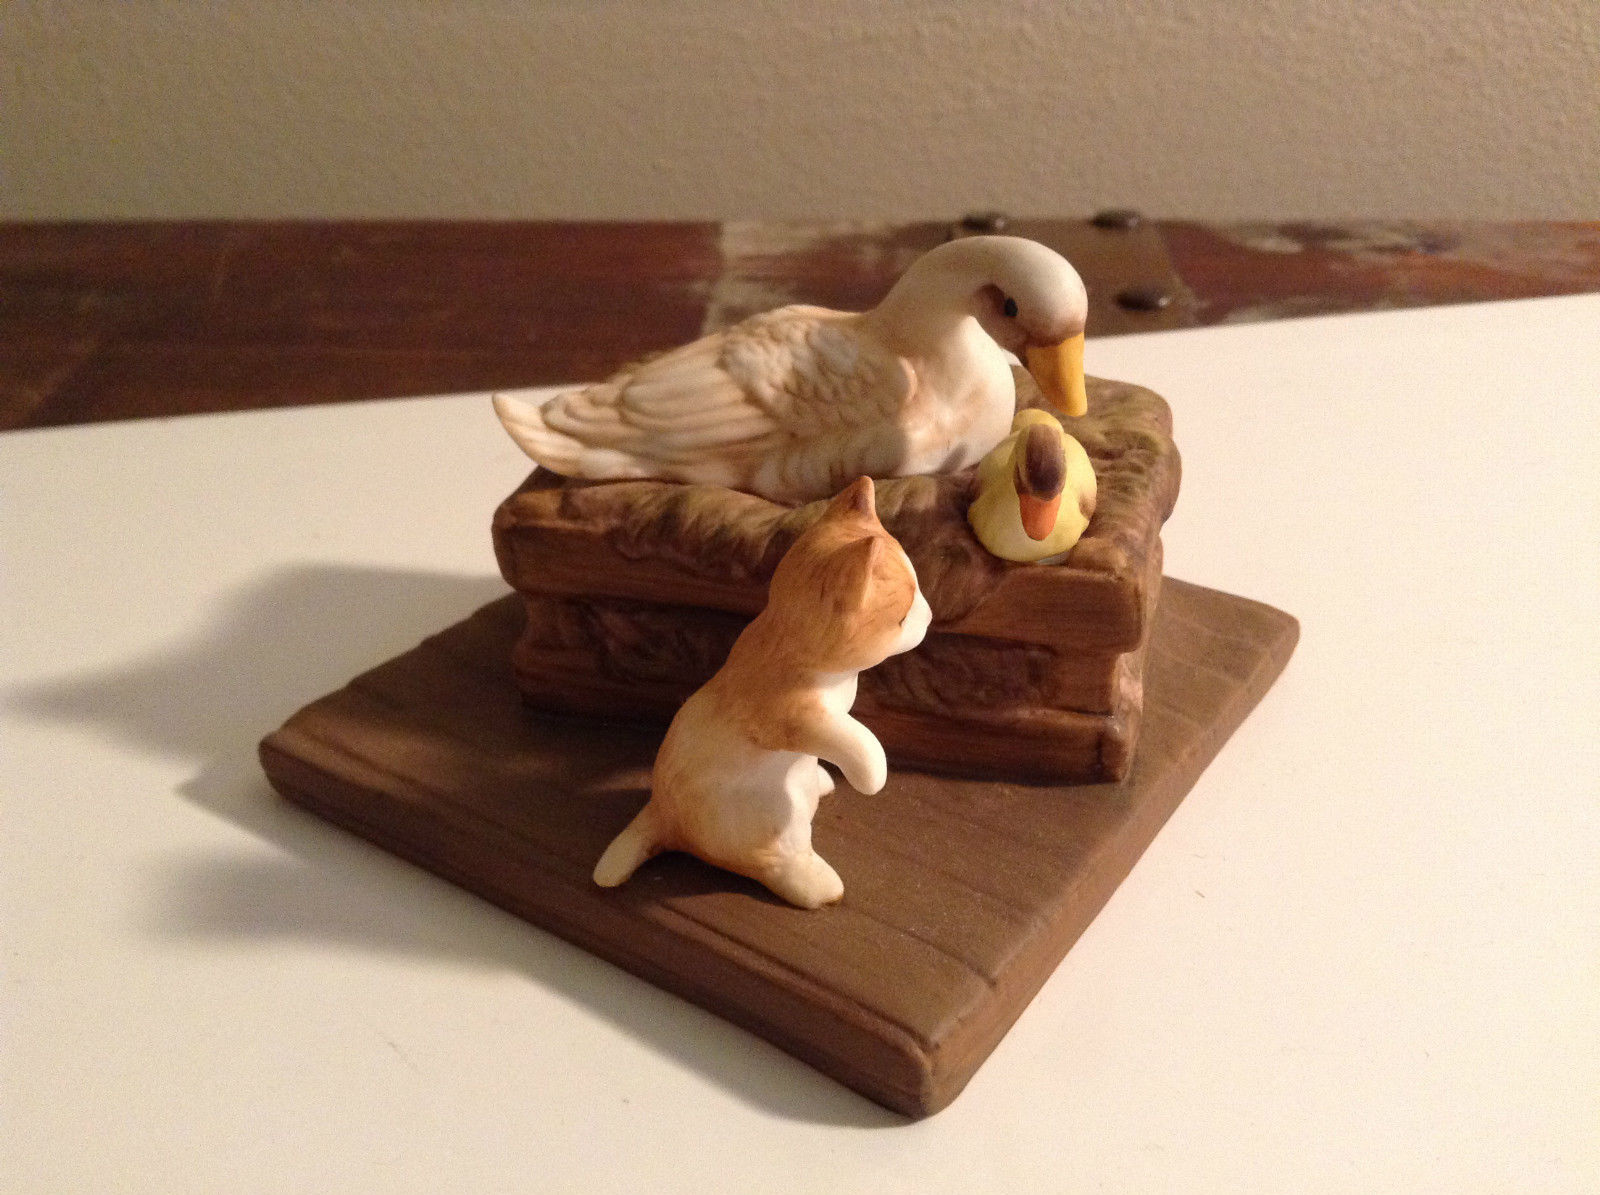 White Duck with Yellow Baby Chick and Brown Kitten Figurine Display Piece